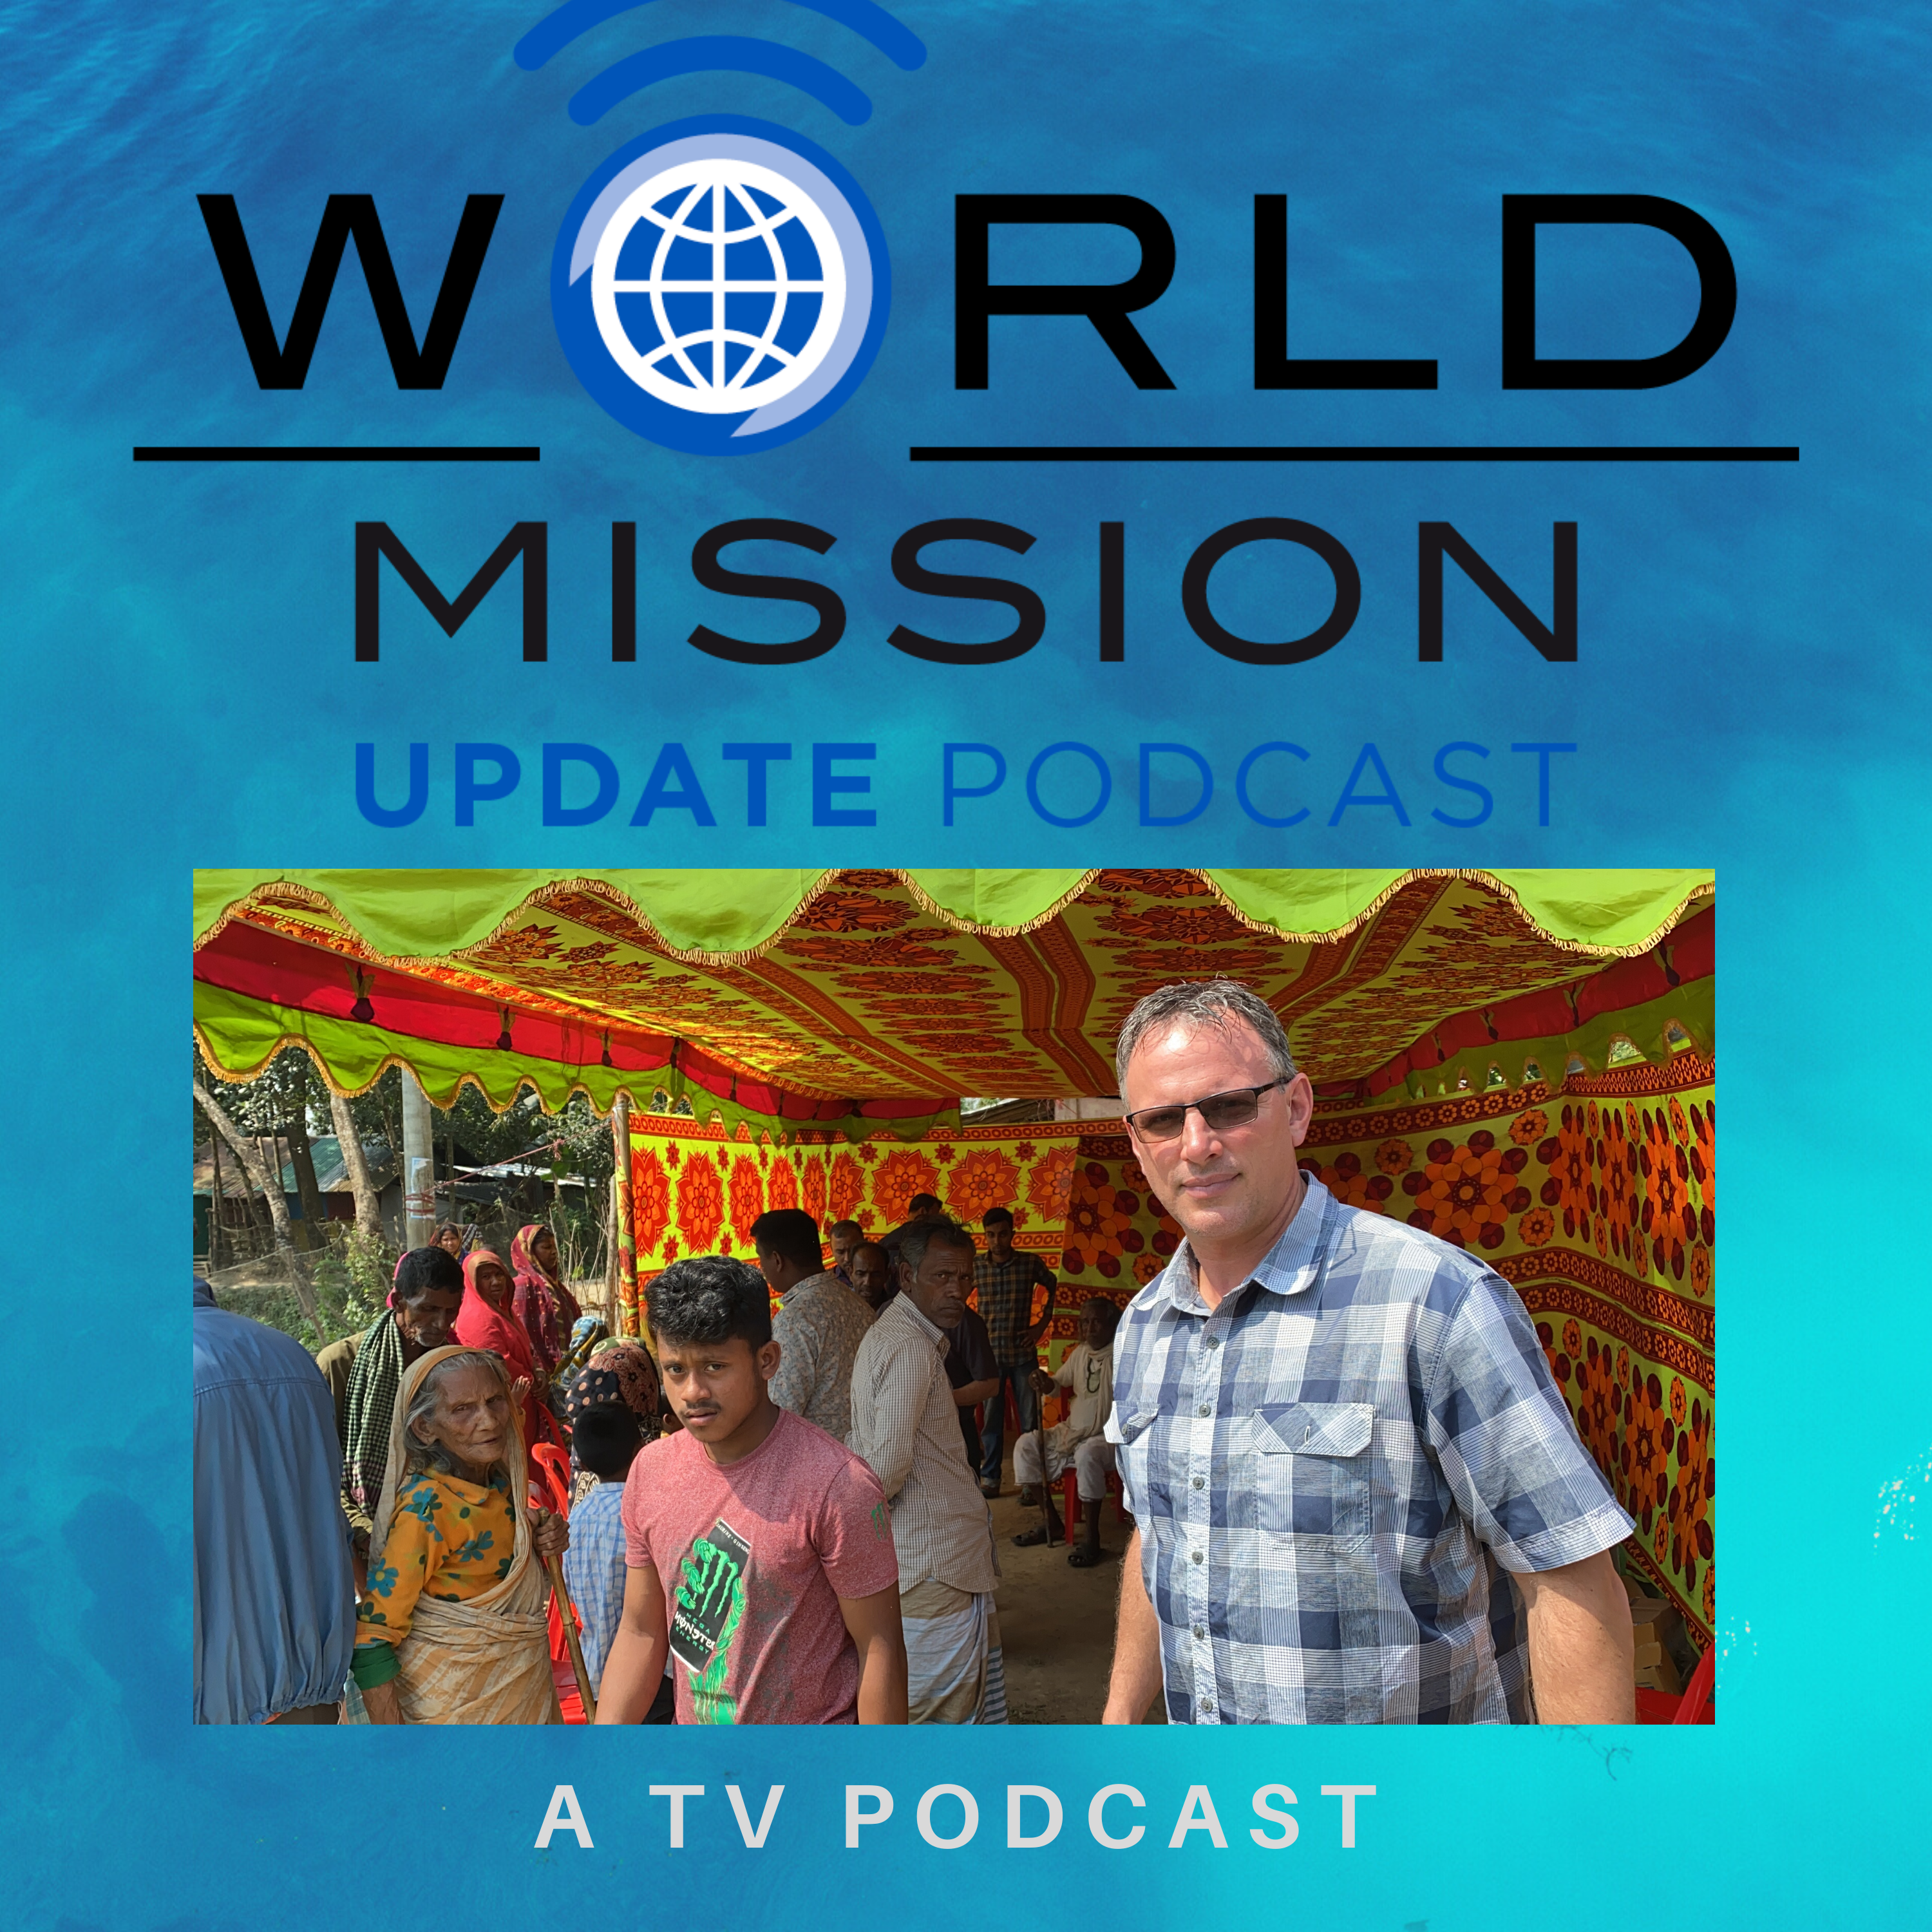 The World Mission Update show art